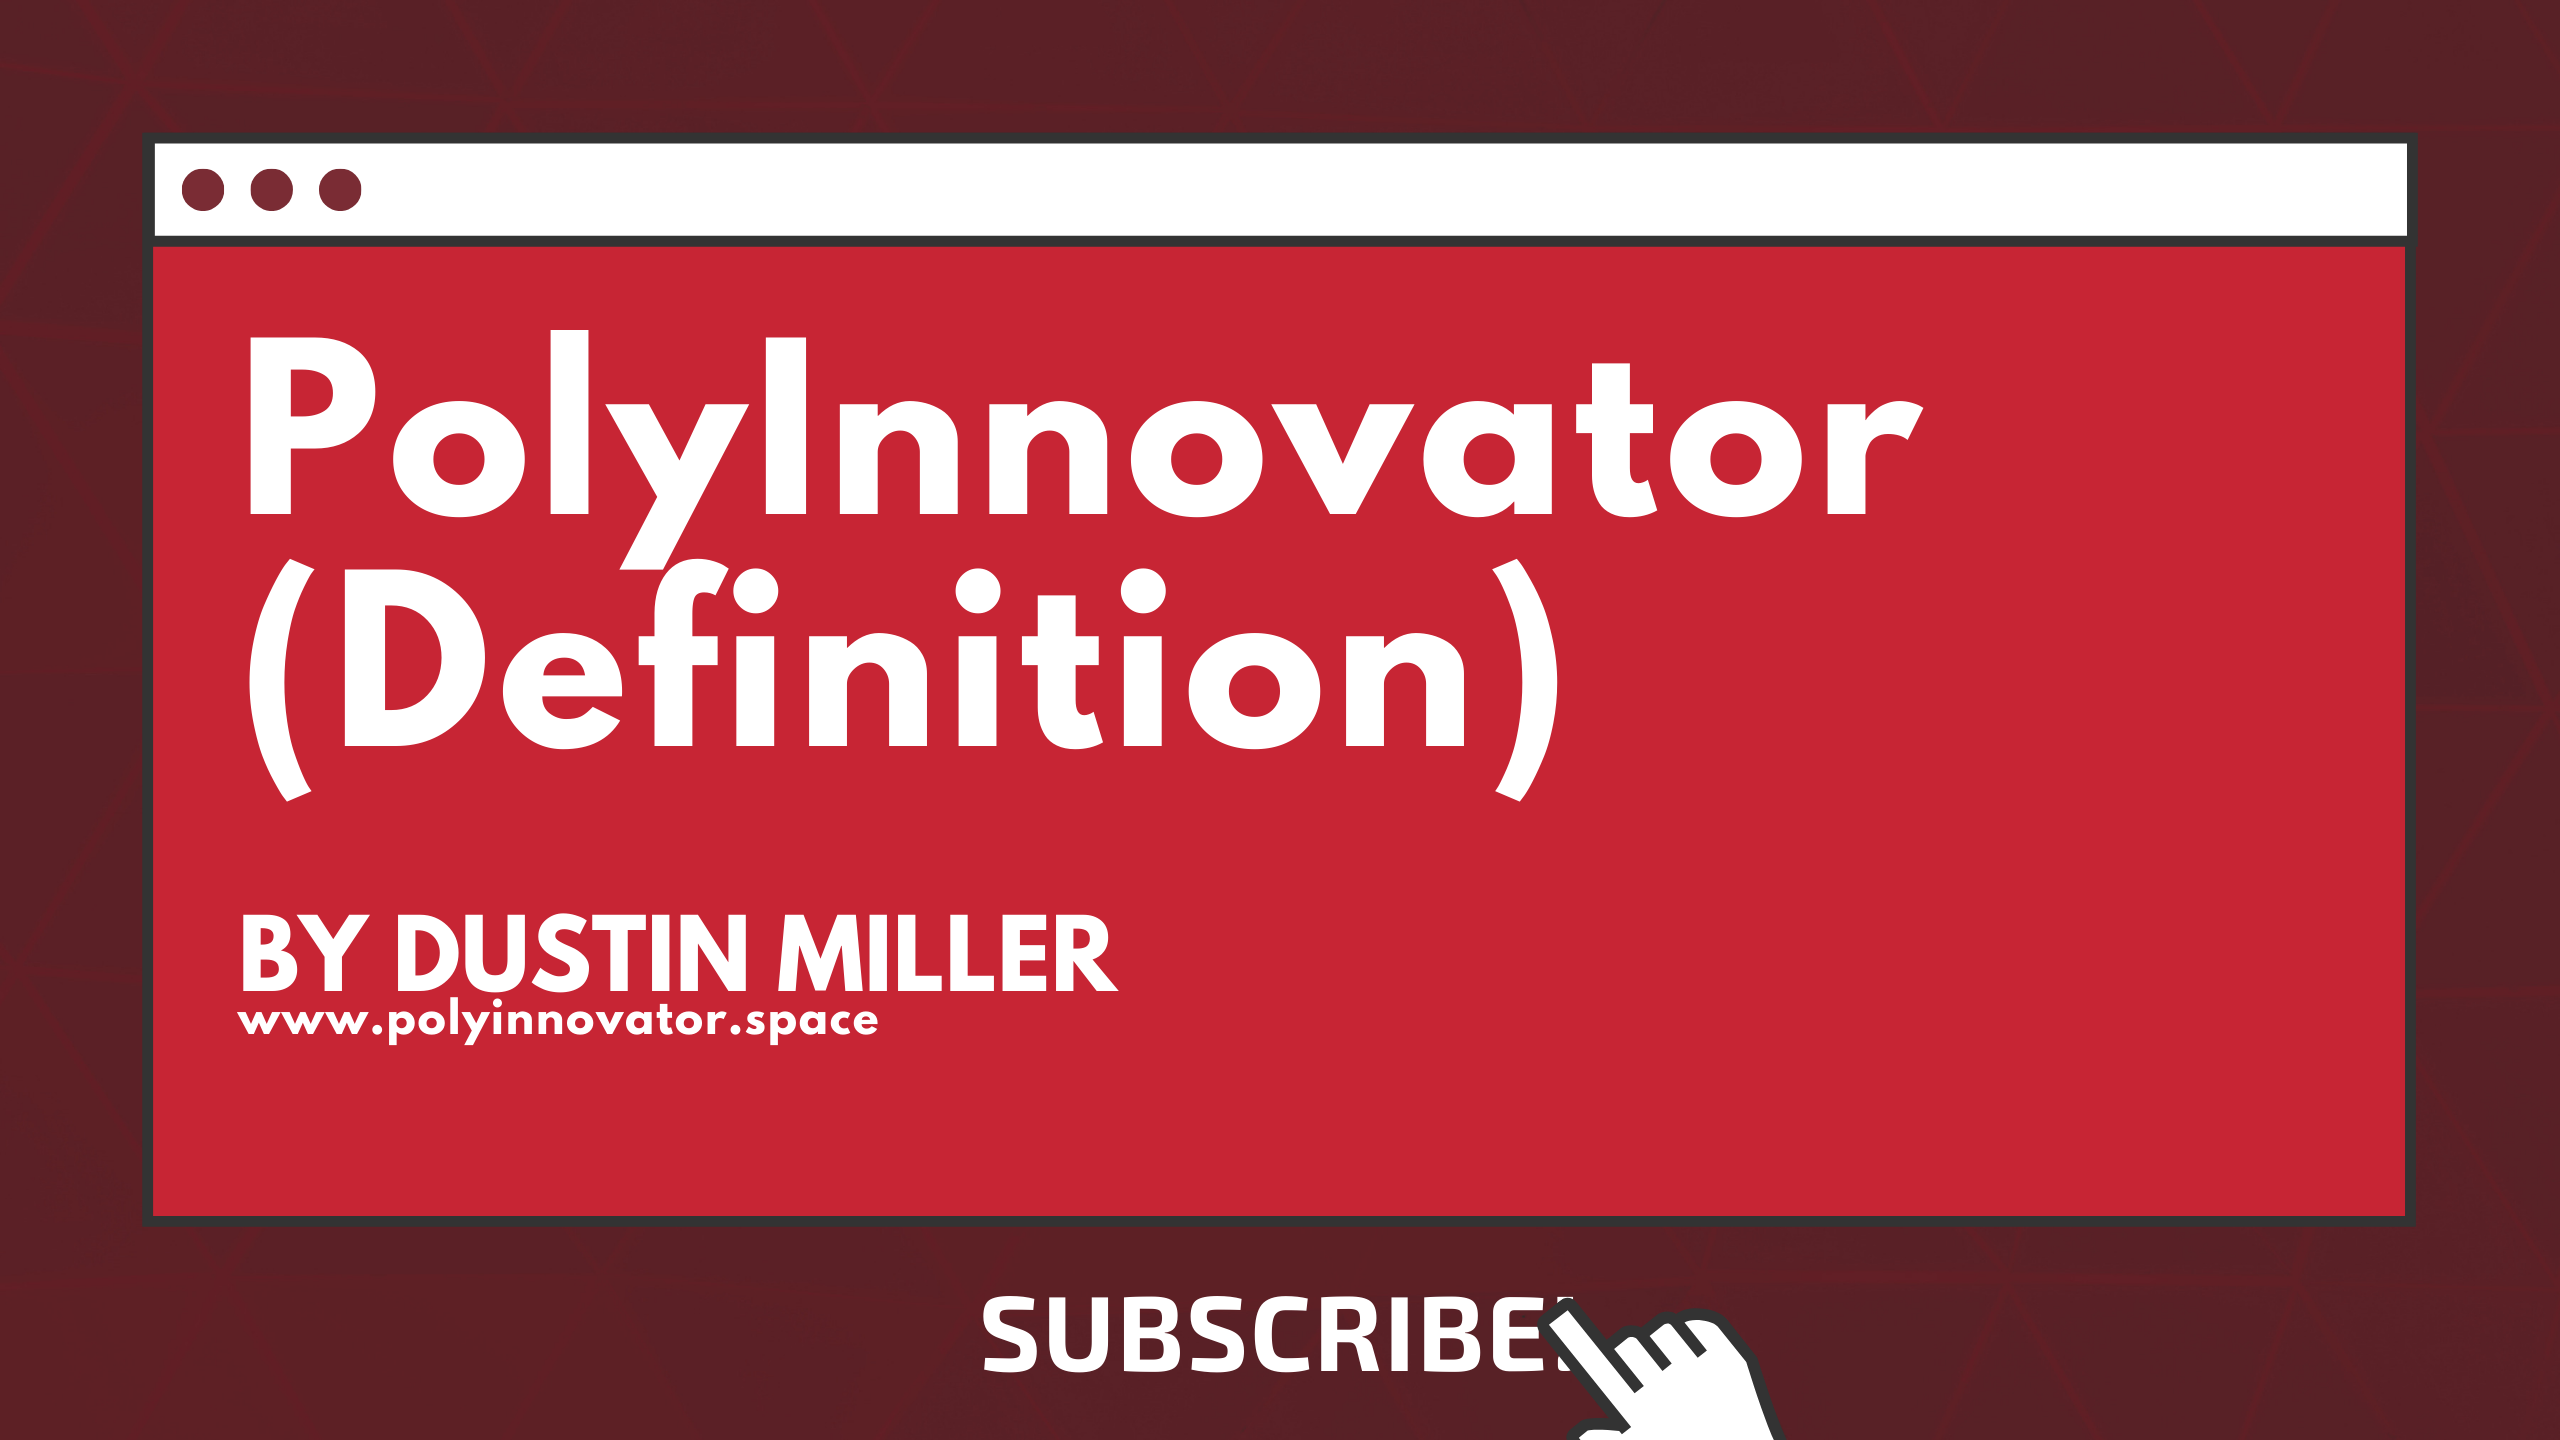 PolyInnovator (Definition)